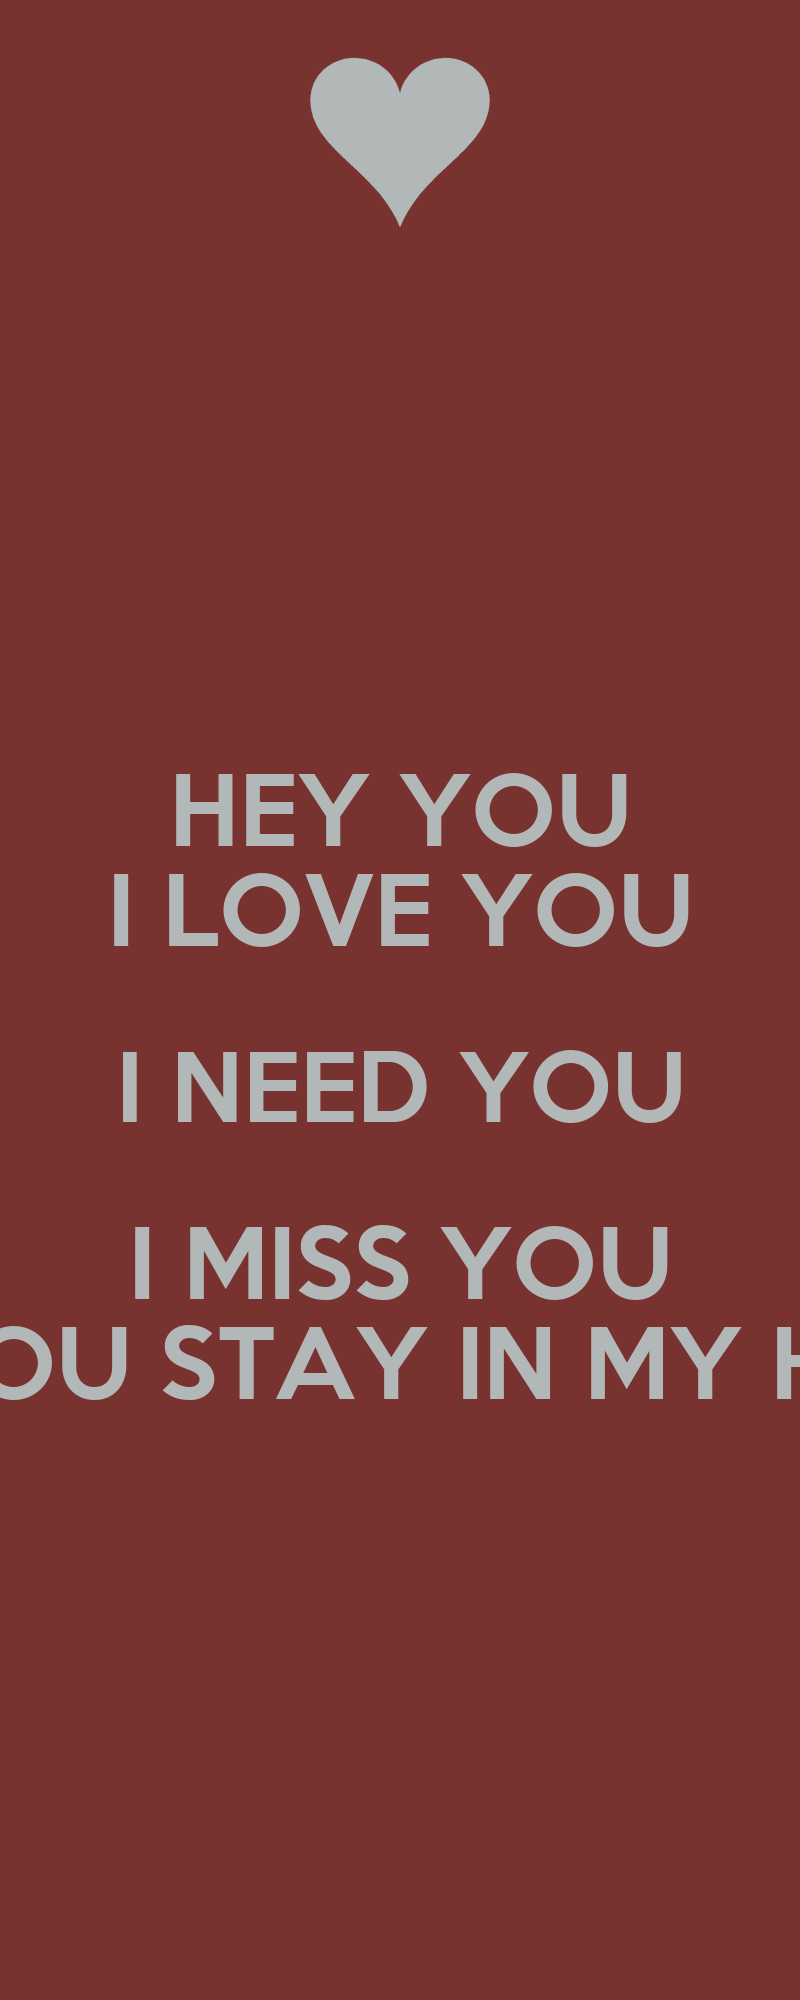 HEY YOU I LOVE YOU I NEED YOU I MISS YOU and YOU STAY IN ...